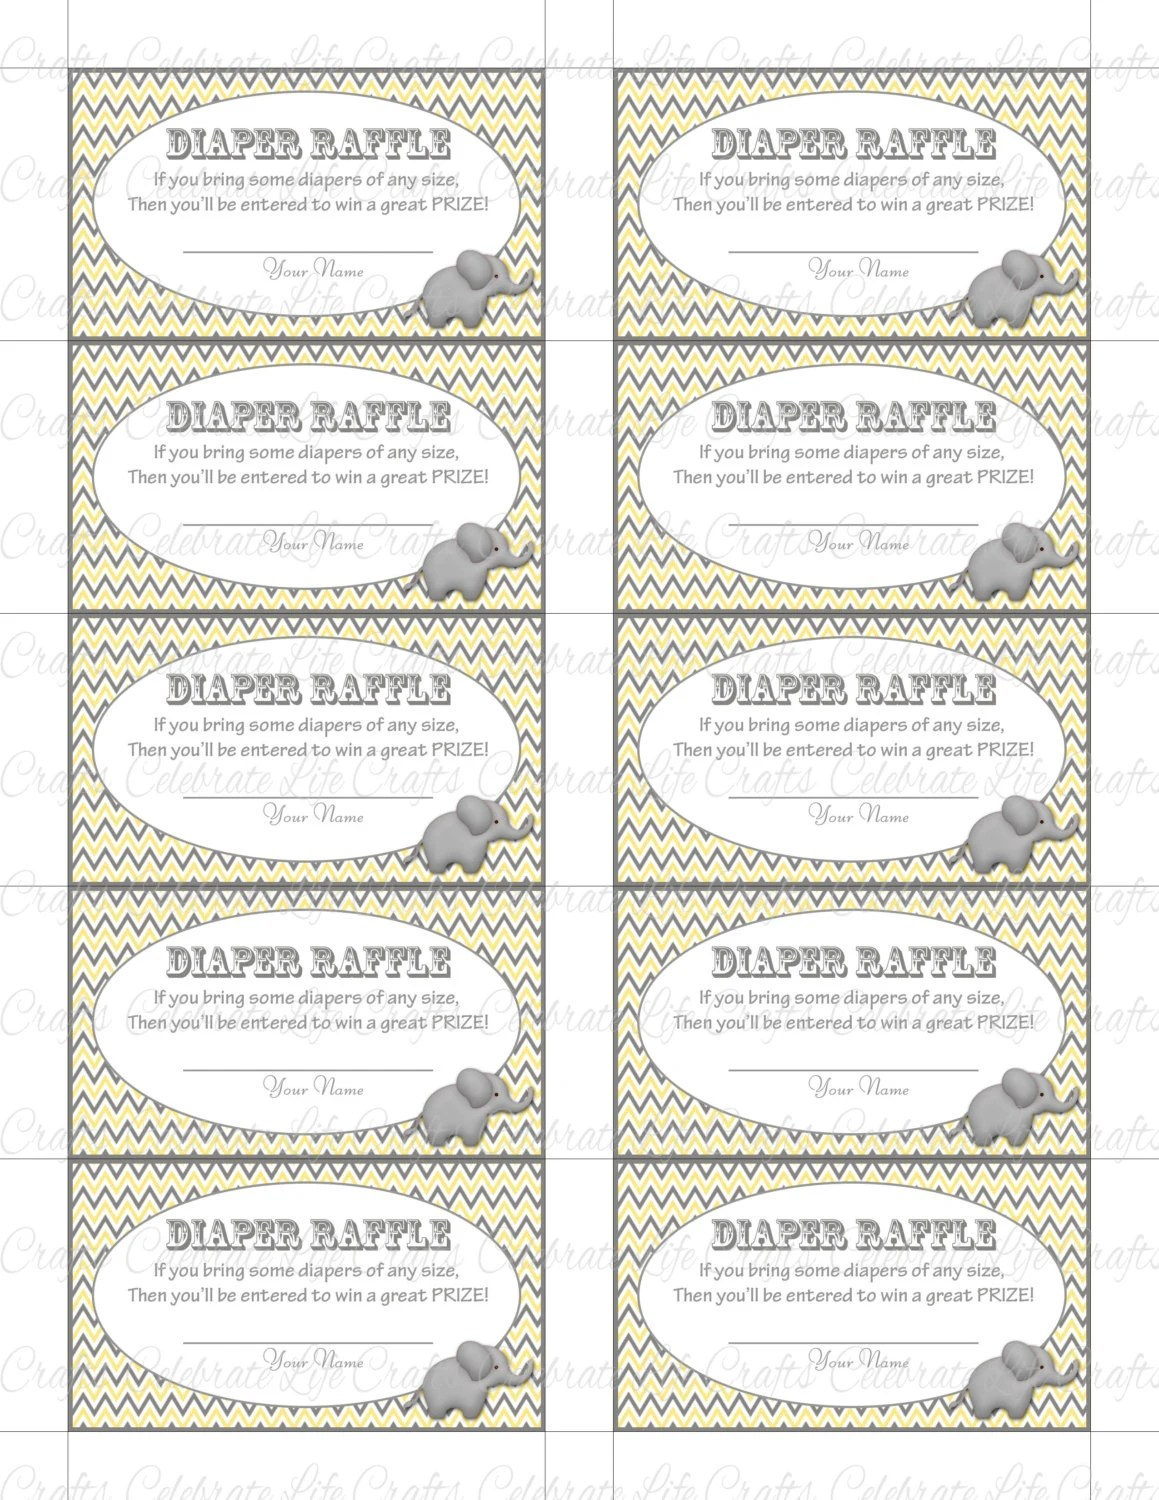 Printable Diaper Raffle Tickets Baby Shower - Instant Download - raffle ticket prizes